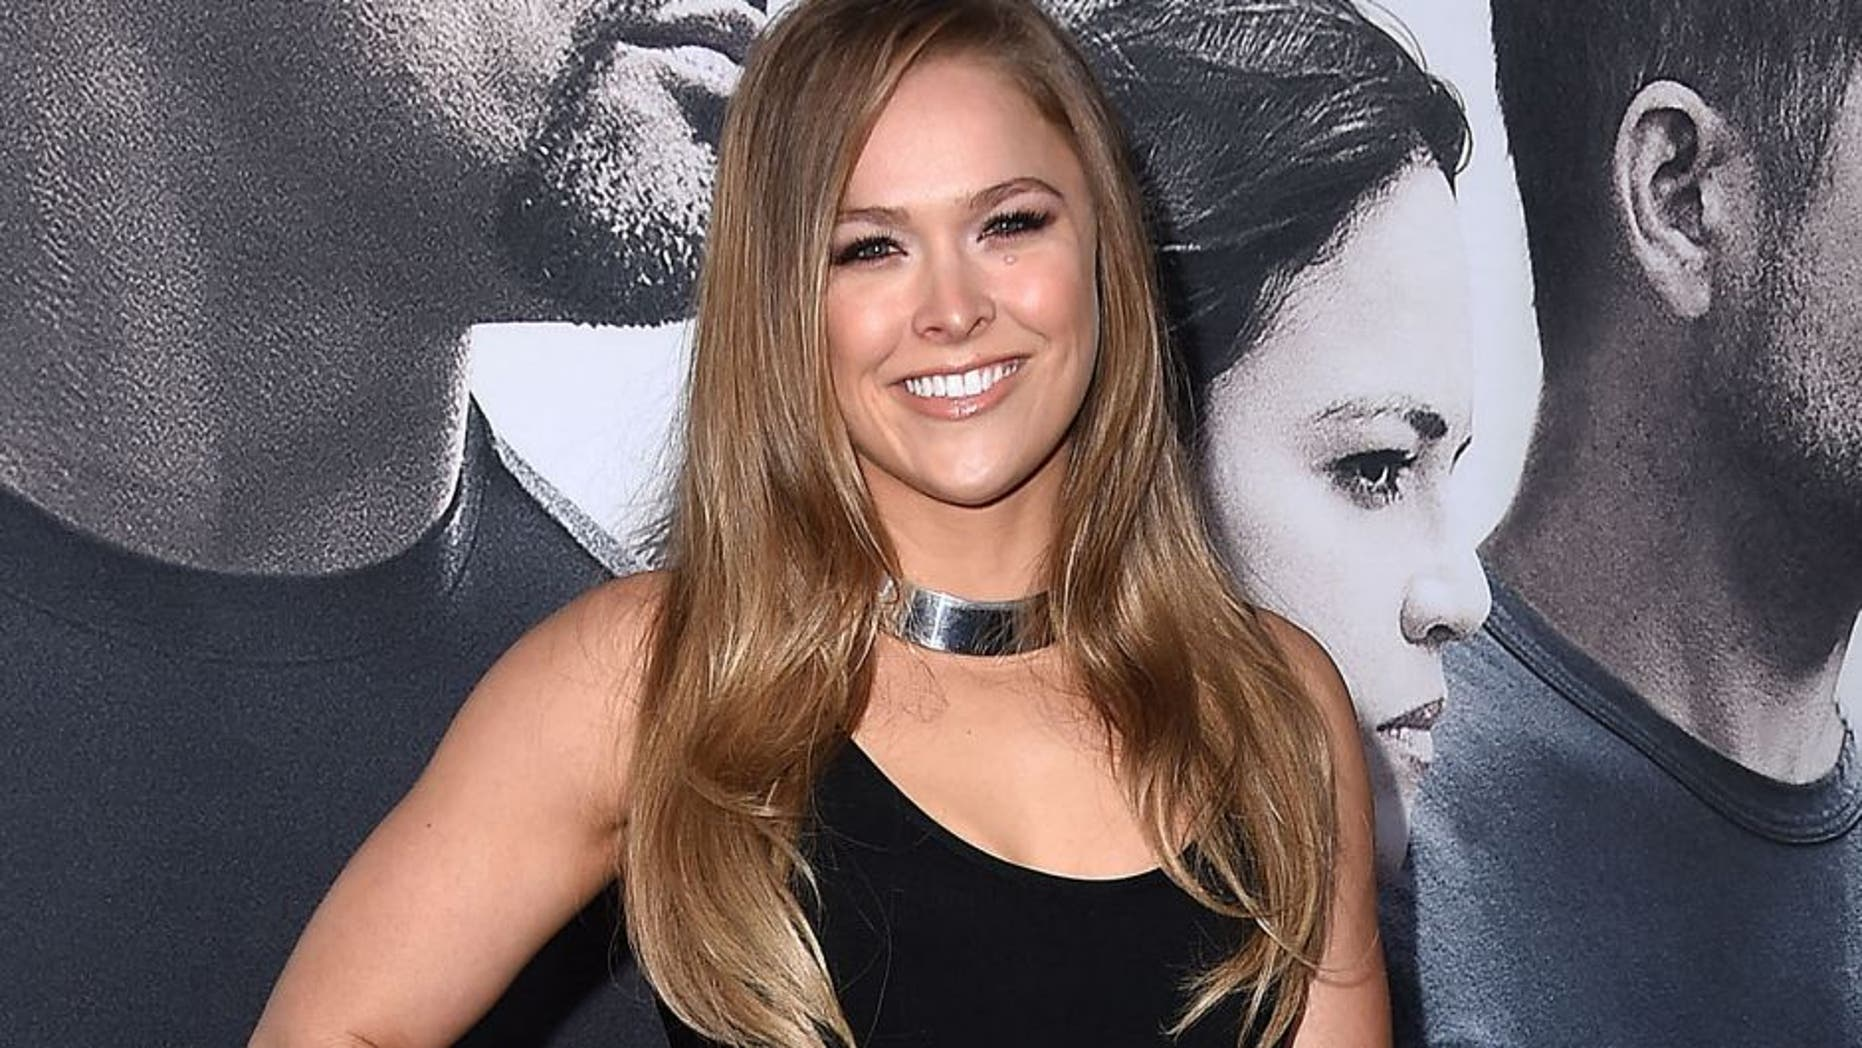 """HOLLYWOOD, CA - APRIL 01: Ronda Rousey arrvies at the """"Furious 7"""" - Los Angeles Premiere at TCL Chinese Theatre IMAX on April 1, 2015 in Hollywood, California. (Photo by Steve Granitz/WireImage)"""